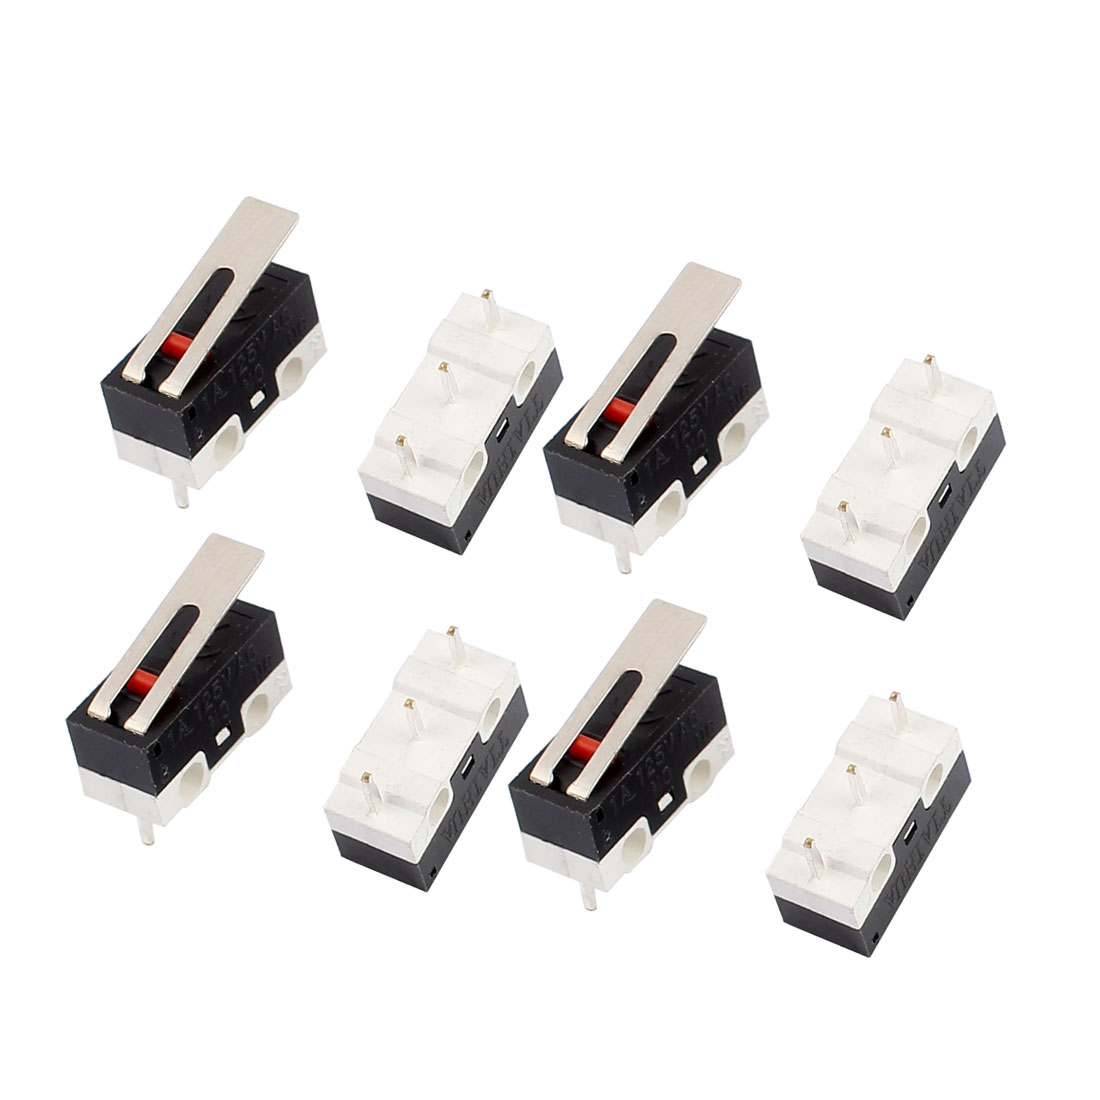 NO NC Contact Short Hinge Lever Actuator Miniature Micro Limit Switch AC125V 1A 8 Pcs